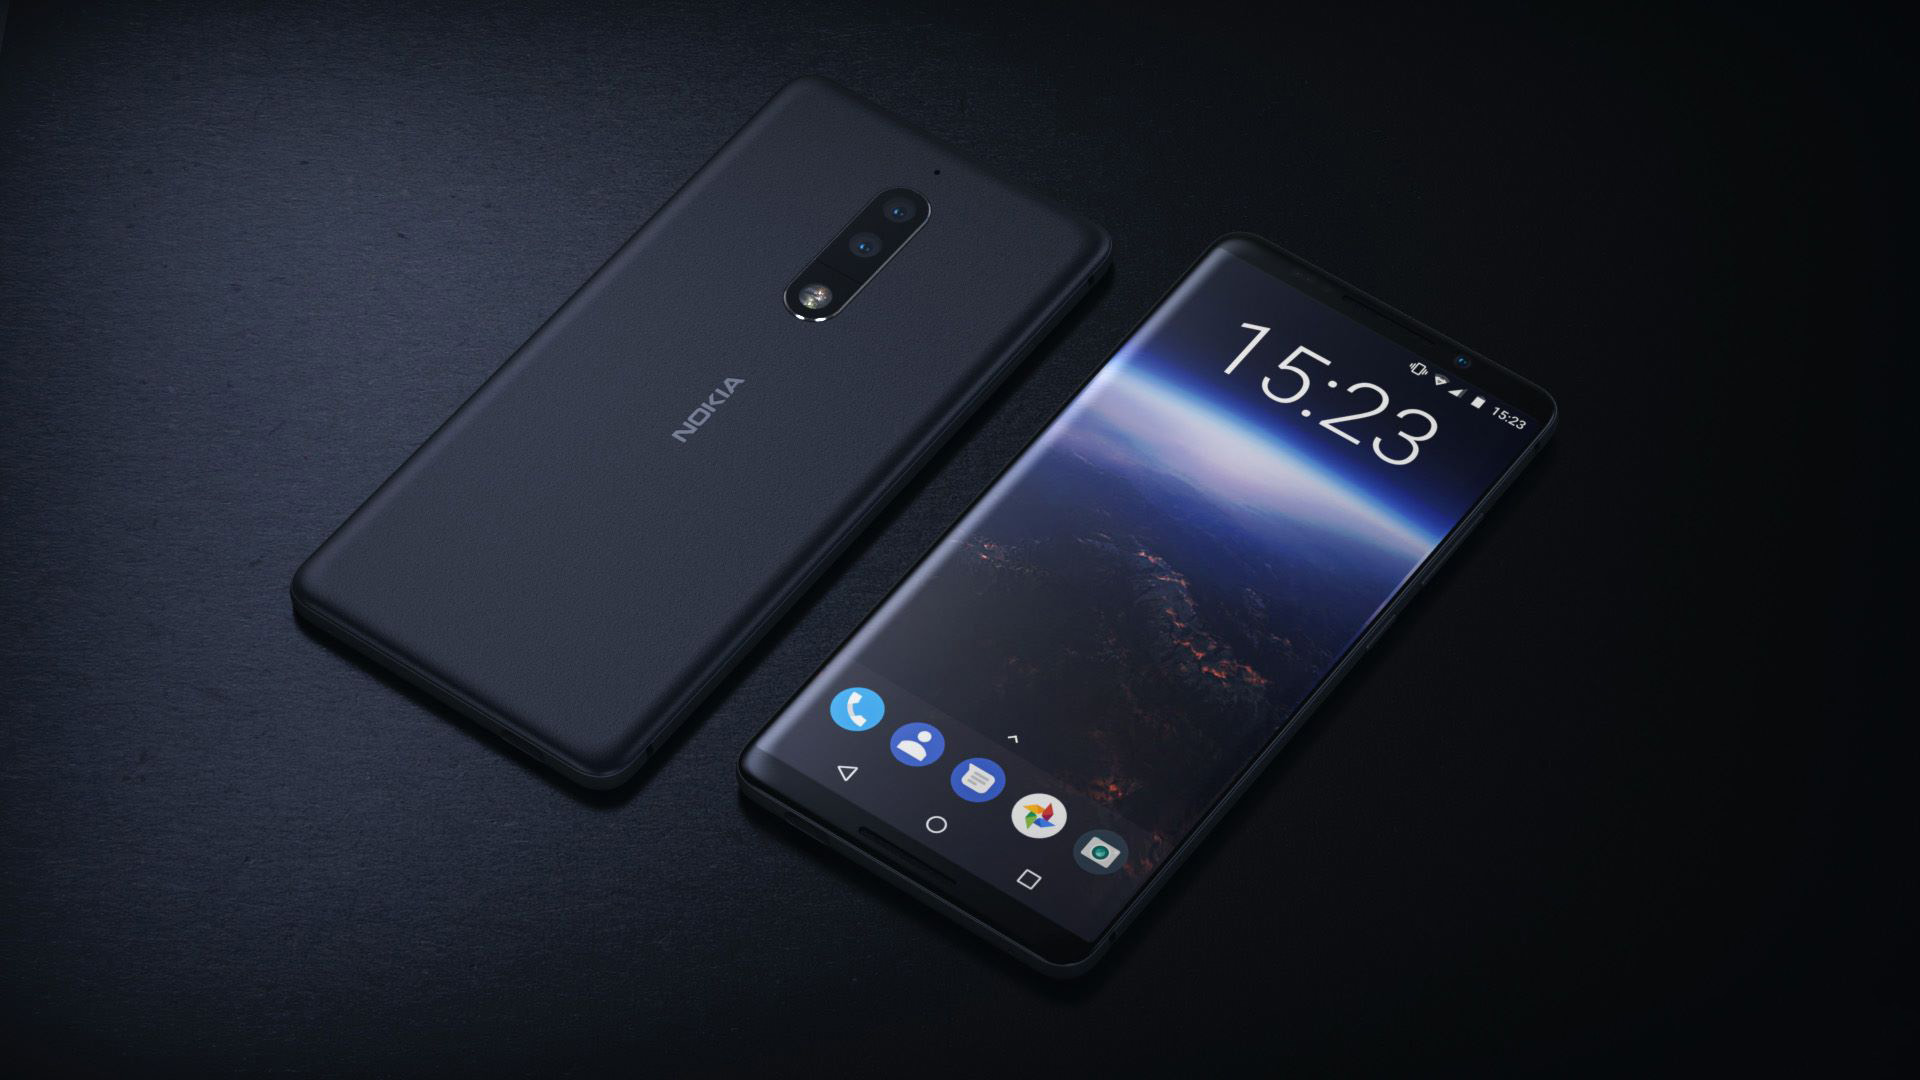 HMD Global is launching a new smartphone on October 4 in London